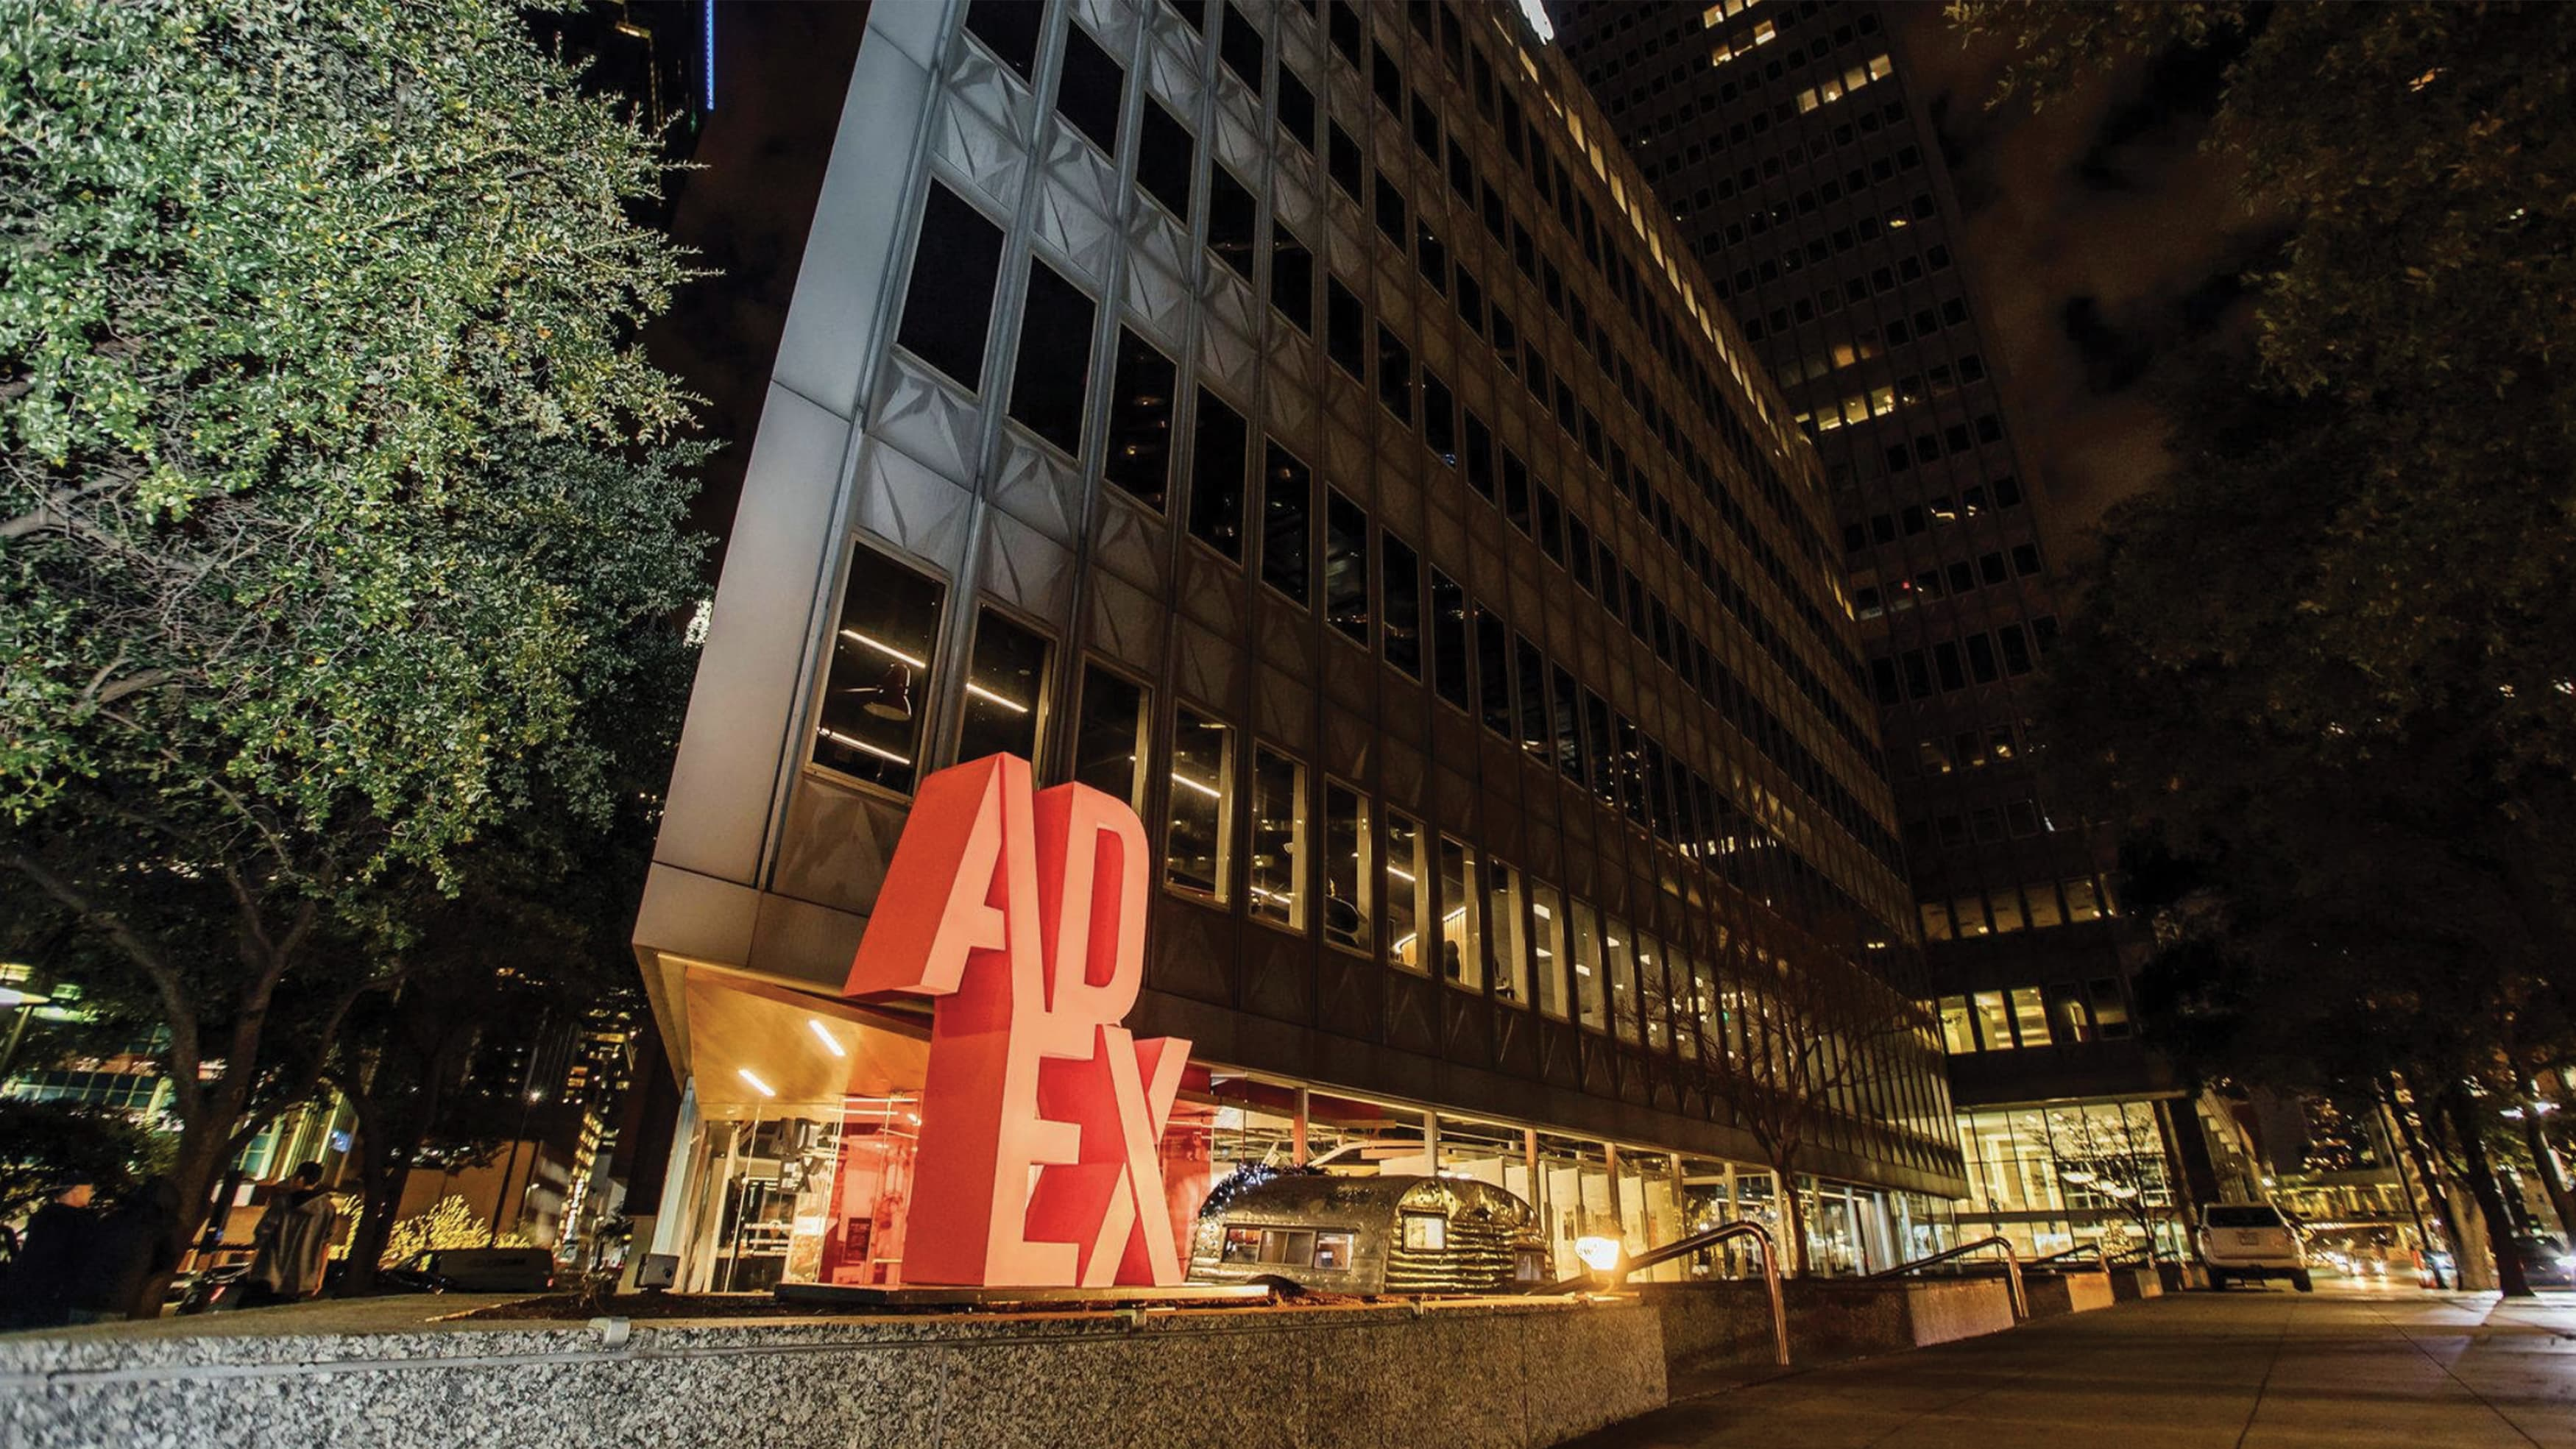 Exterior monument signage and streetscape outside Ad Ex building in downtown Dallas